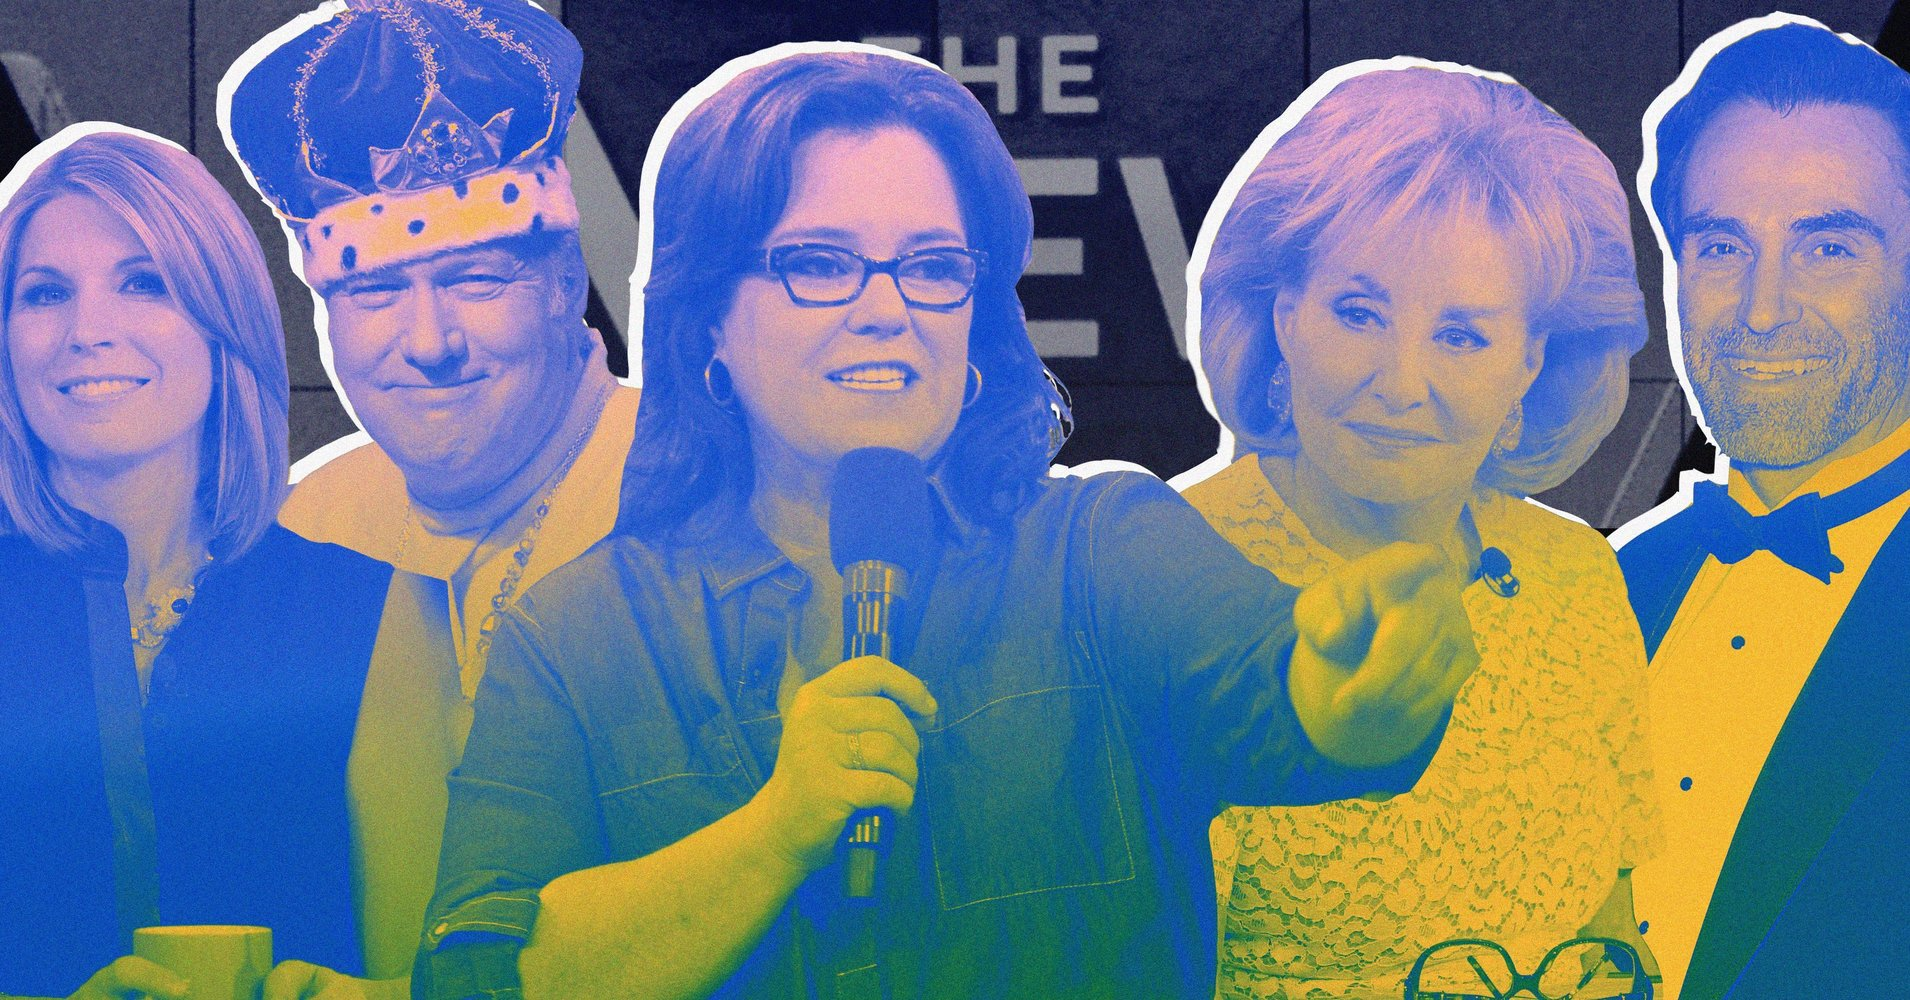 New Book Reveals Stunning Misconduct And Dysfunction At ABC's 'The View'